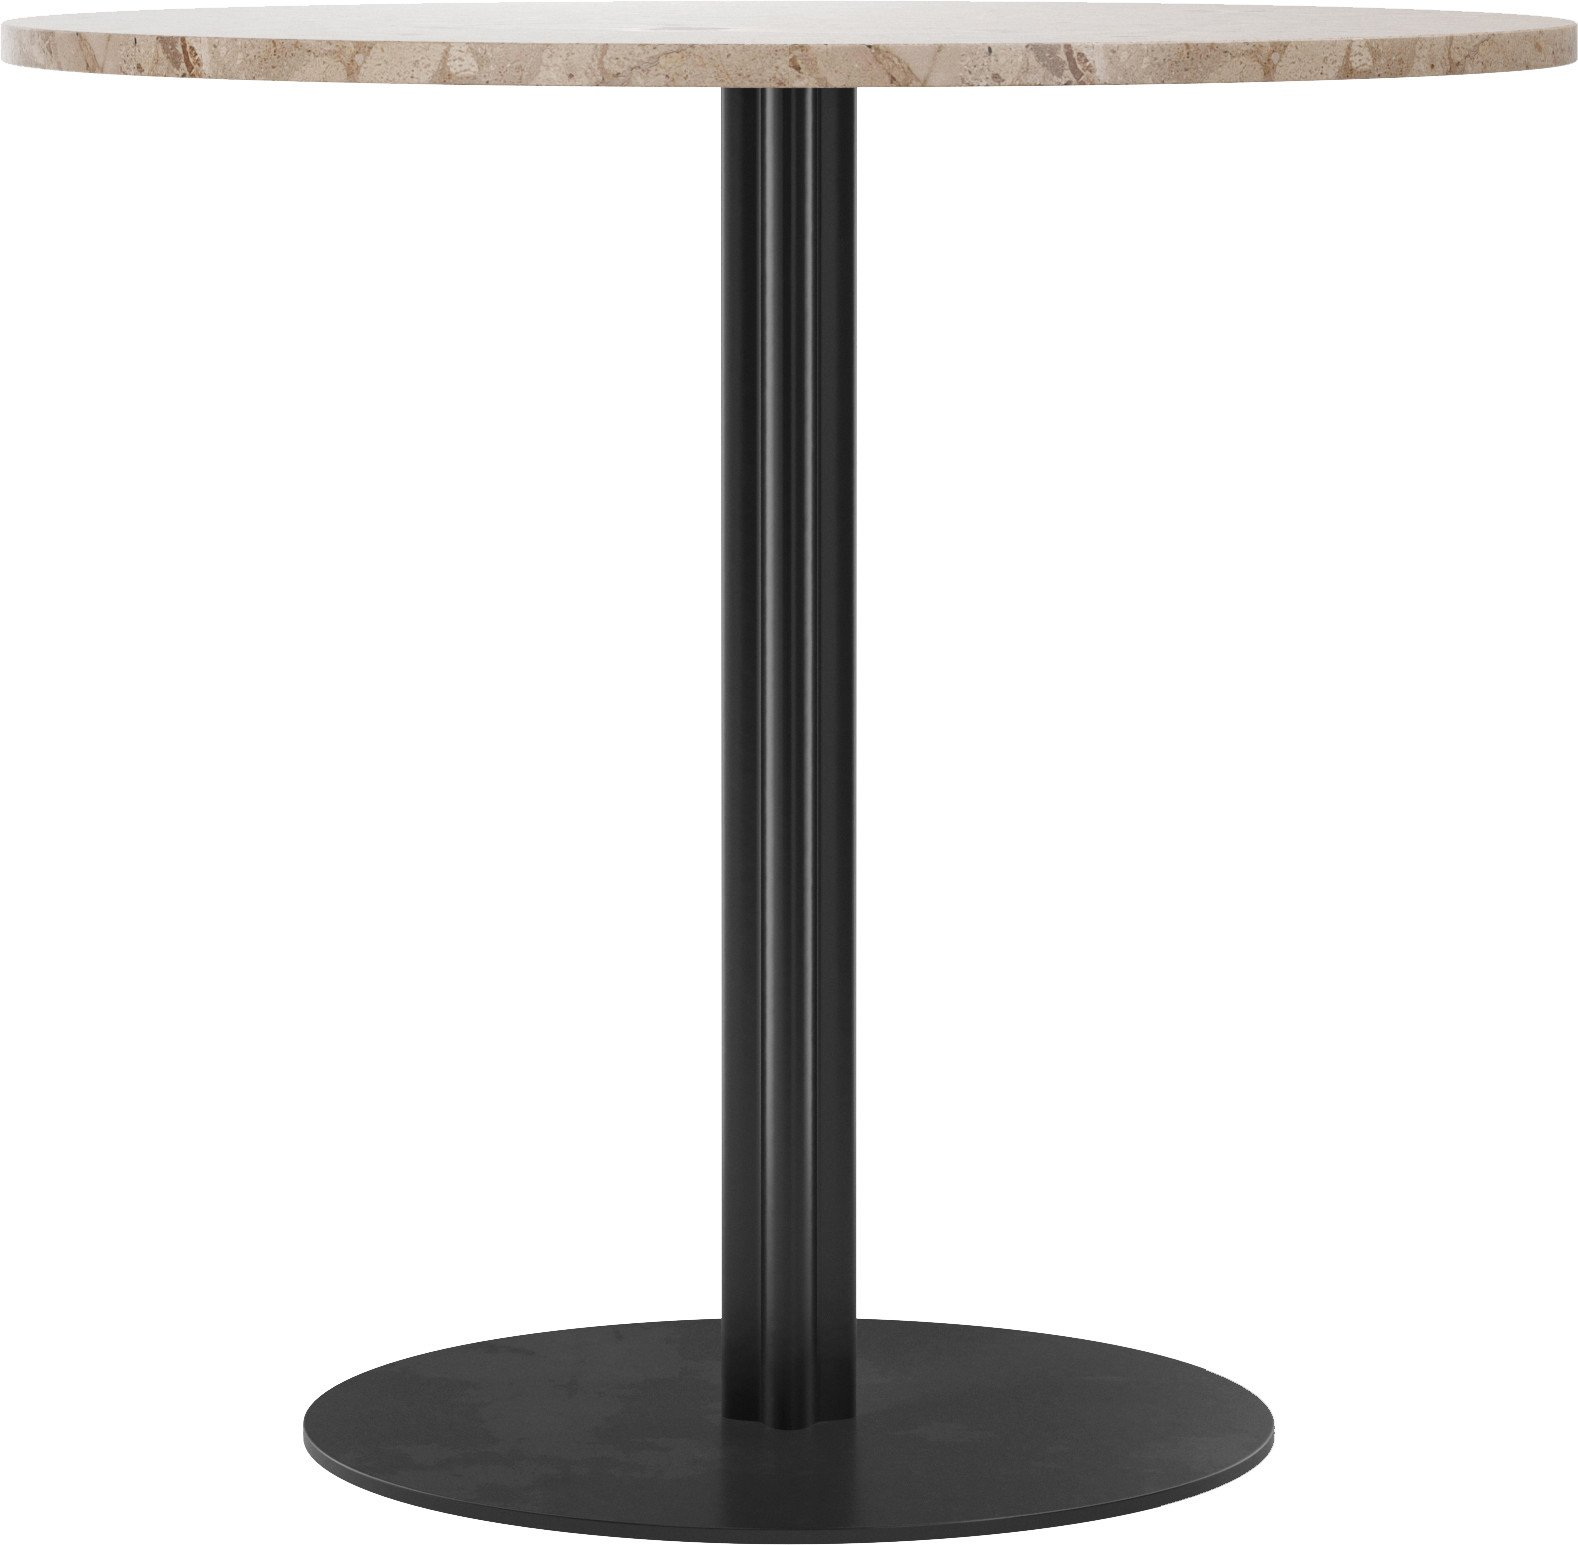 Harbour Column Dining Table Ø80 cm Kunis Brescia Marble by Norm Architects, Menu